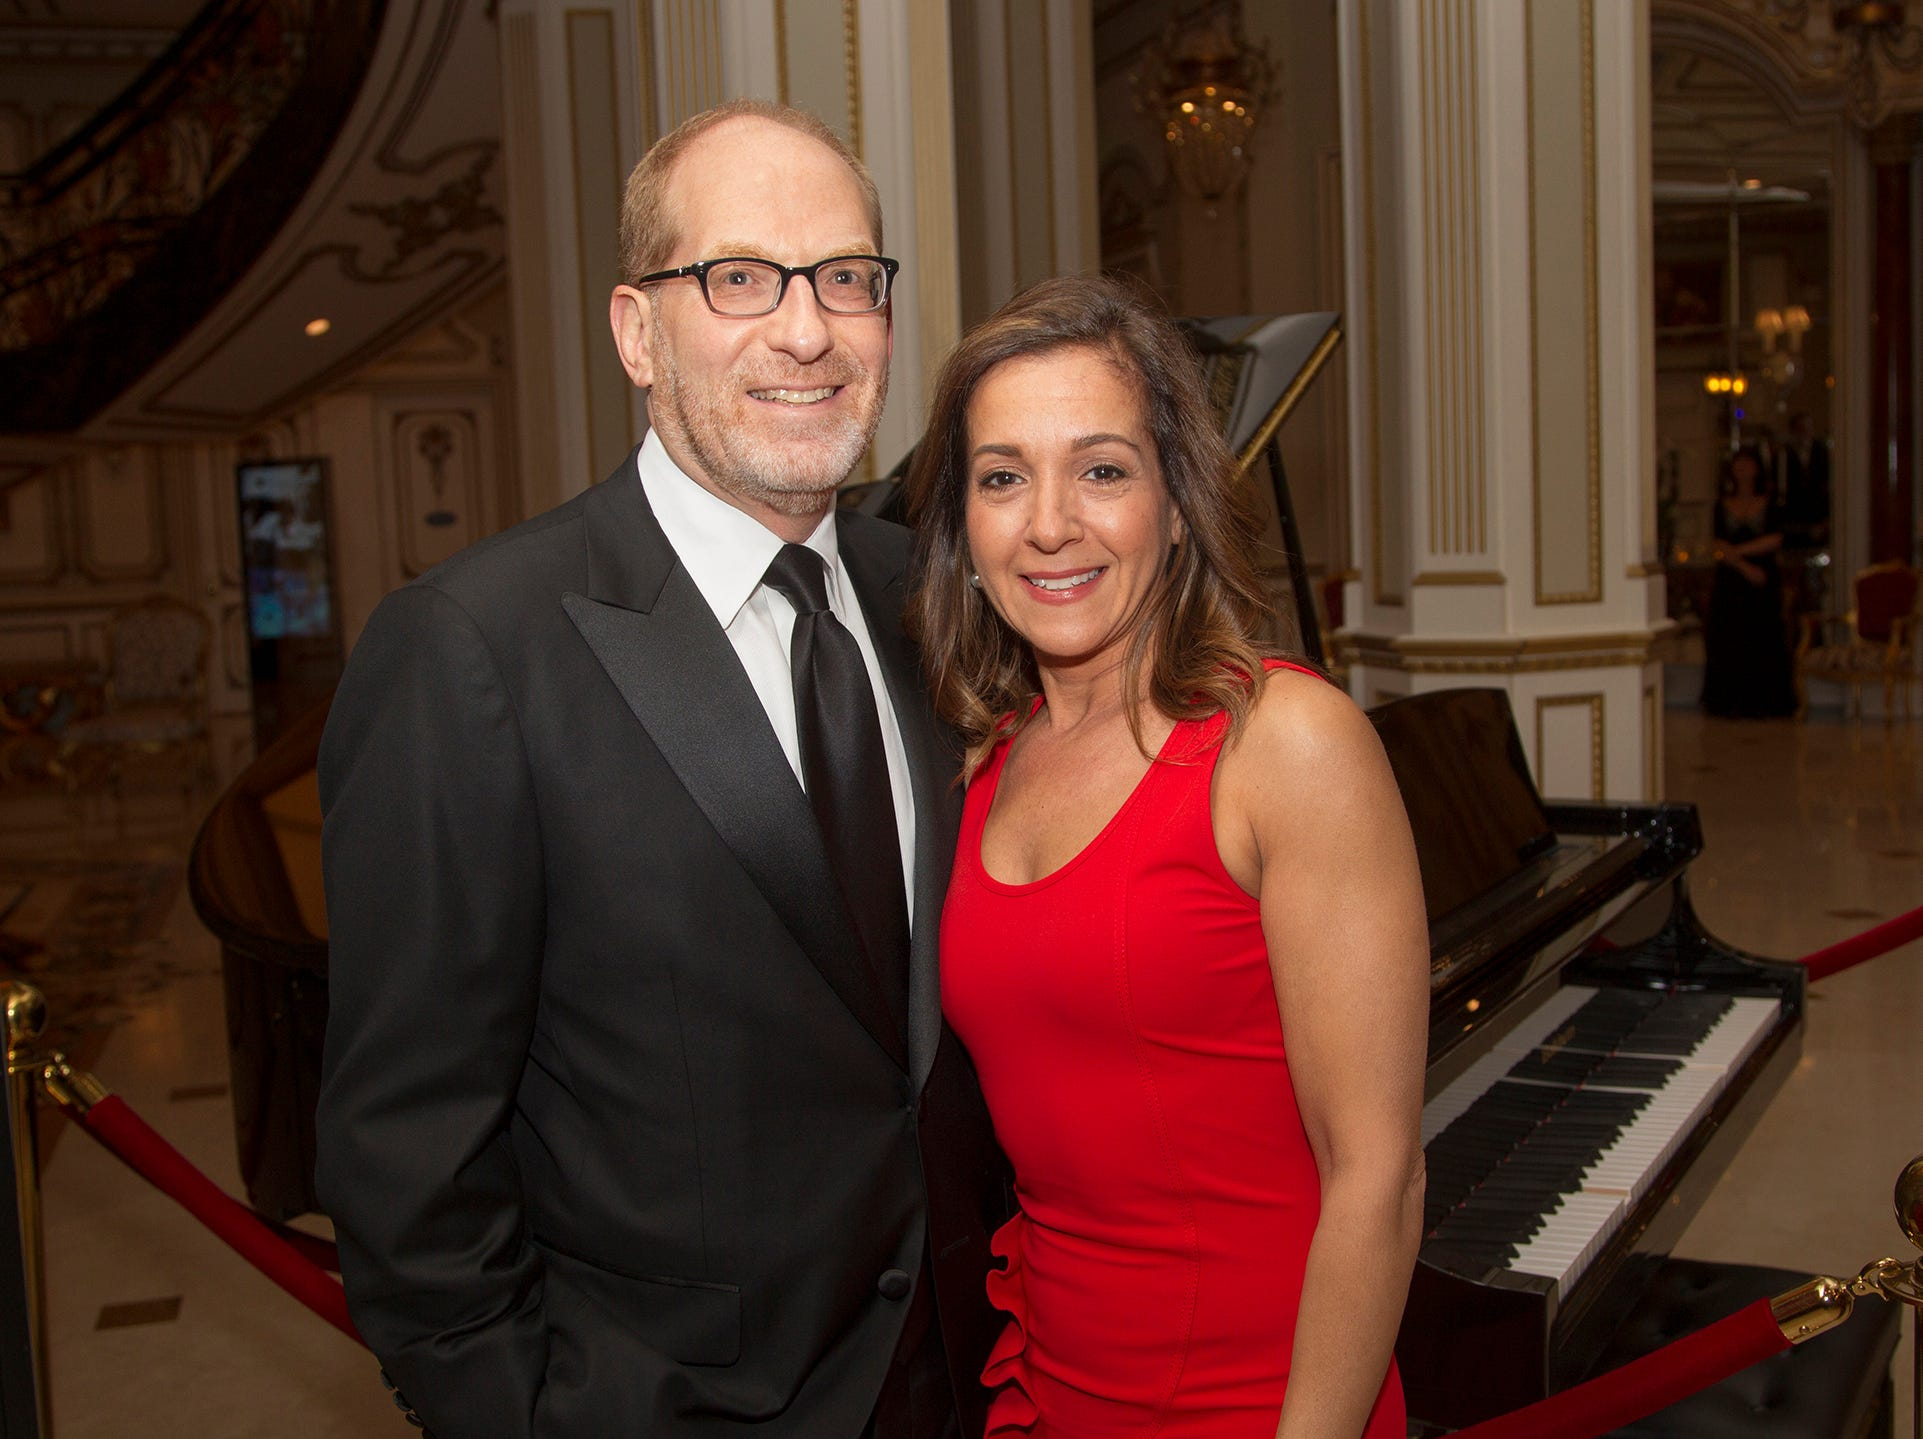 Wayne and Marcie Wald. The 72nd Annual Valley Ball gala at The Legacy Castle in Pompton Plains. 11/16/2018